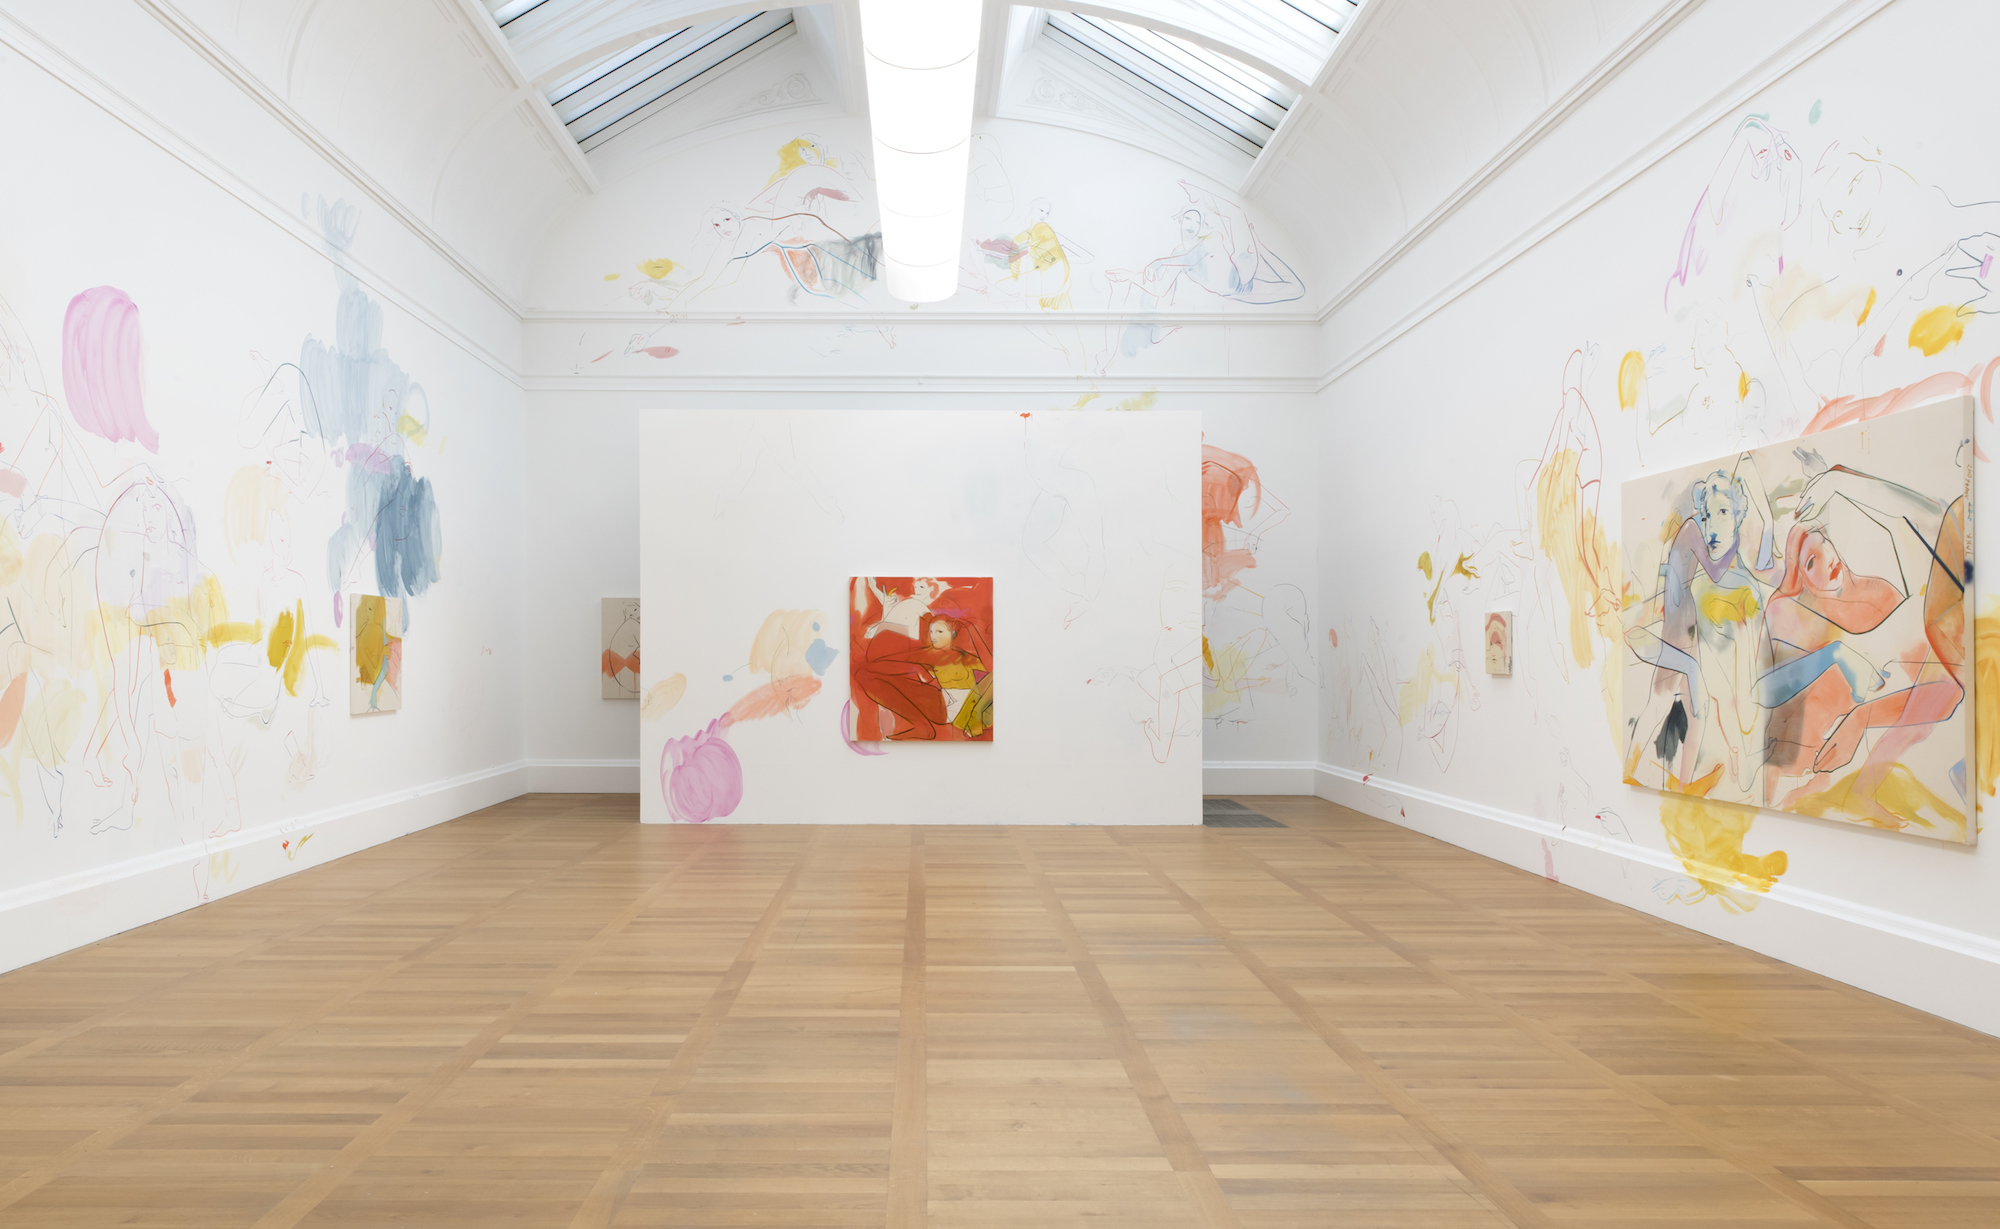 Installation view of Art Now: France Lise Mcgurn: Sleepless at Tate Britain, 2019